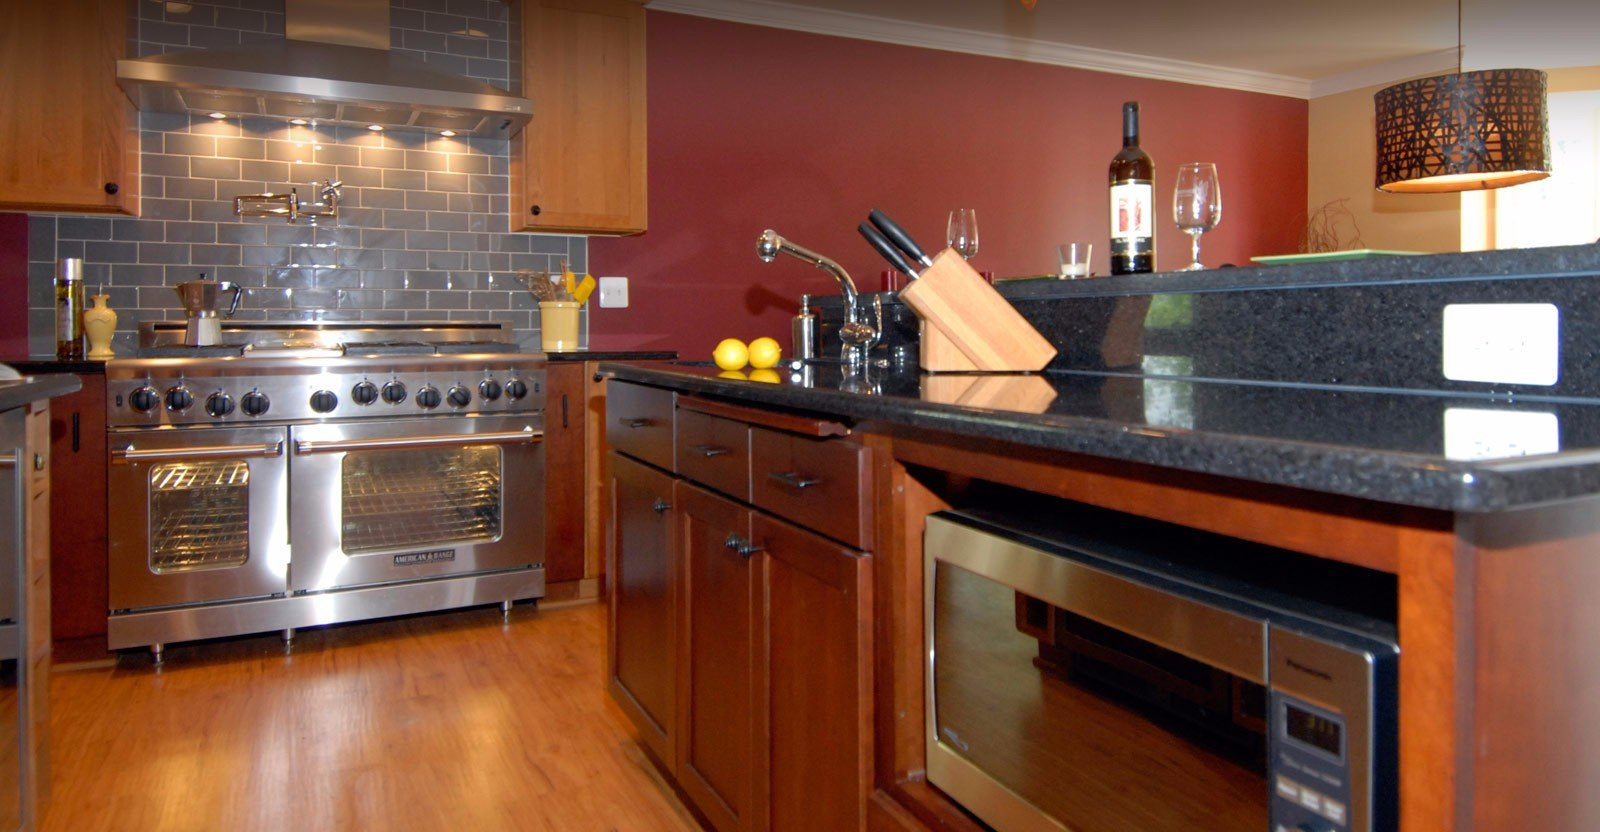 thomascustombuilders kitchen remodeling manassas va Practical Kitchens With A Modern Touch More on Kitchen Remodeling